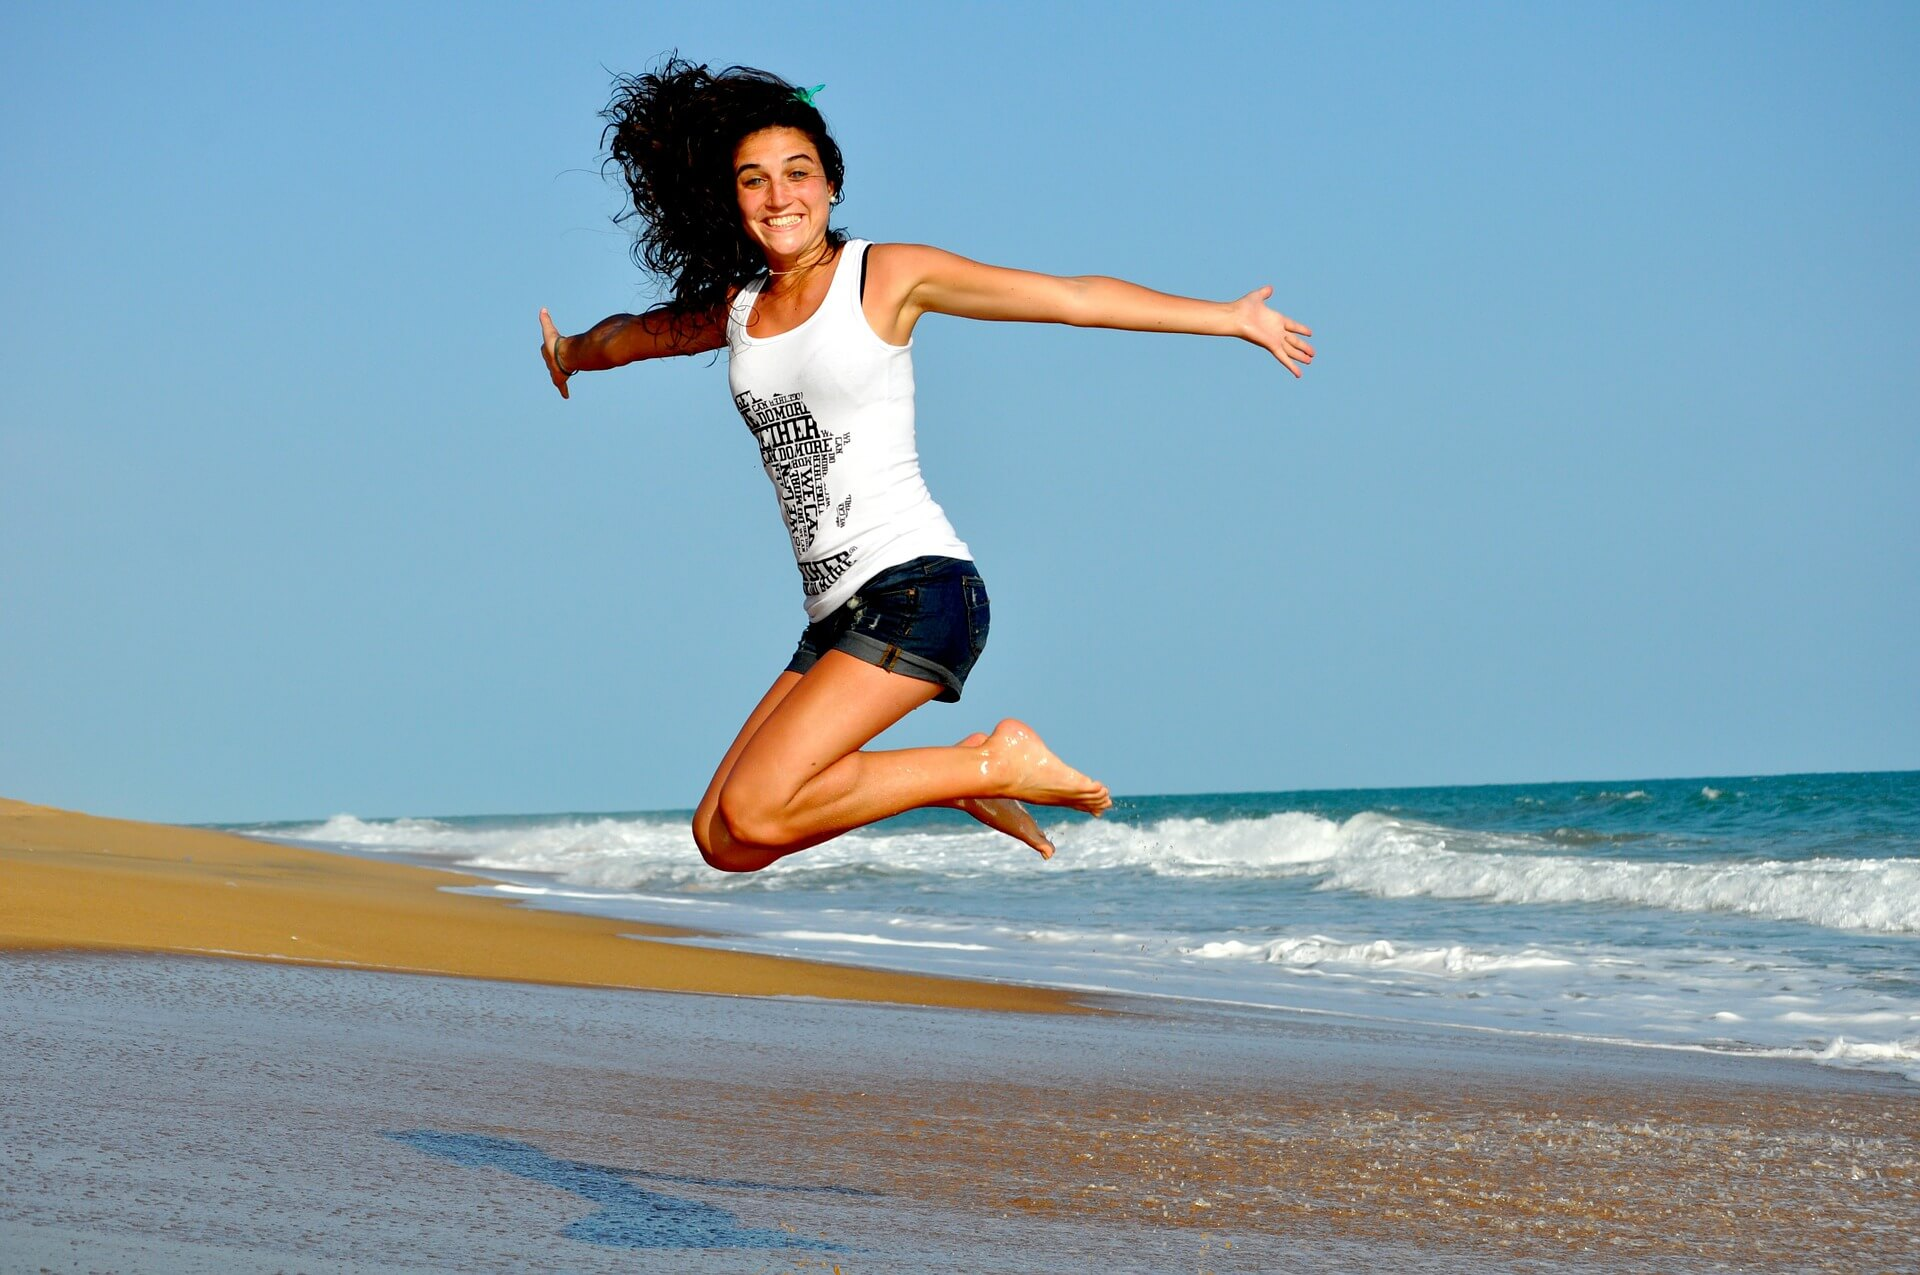 a young girl jumping in the air on a beach